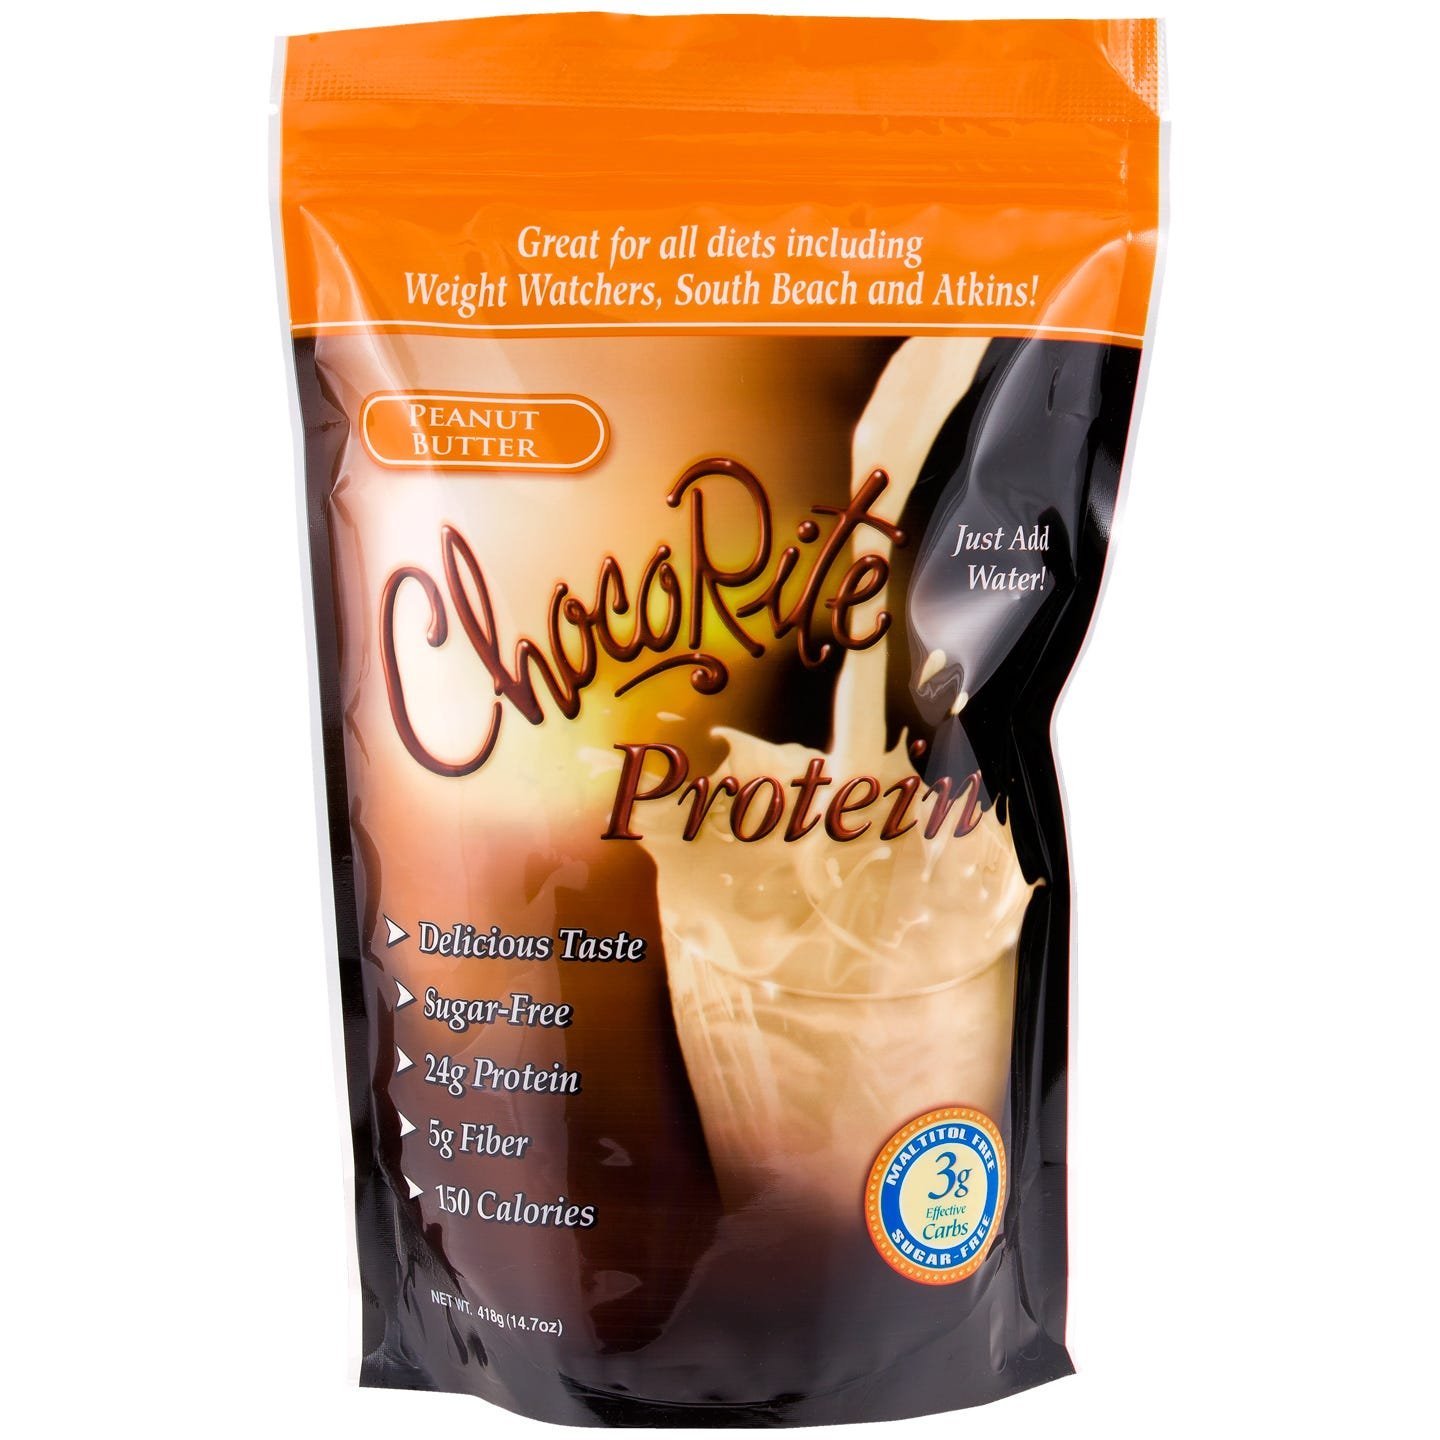 Chocorite Sugar-Free Protein Shake Mix - Peanut Butter